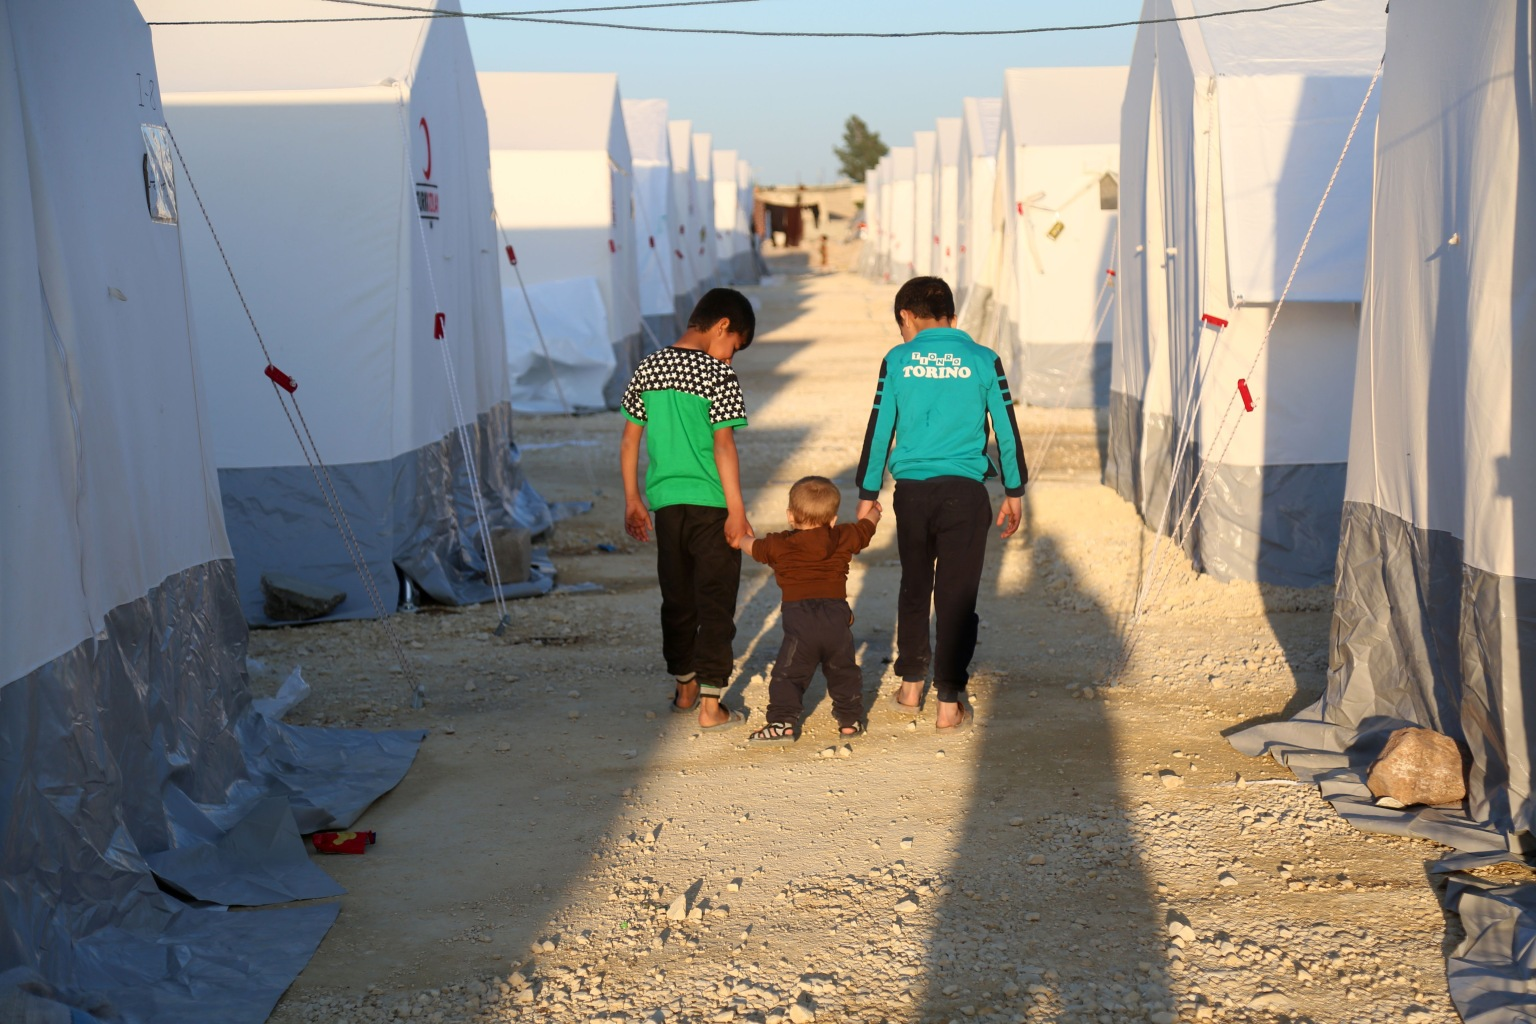 Children walk at a camp for displaced Syrians east of the rebel-held town of Azaz in northern Syria on April 15. ZEIN AL RIFAI/AFP/Getty Images